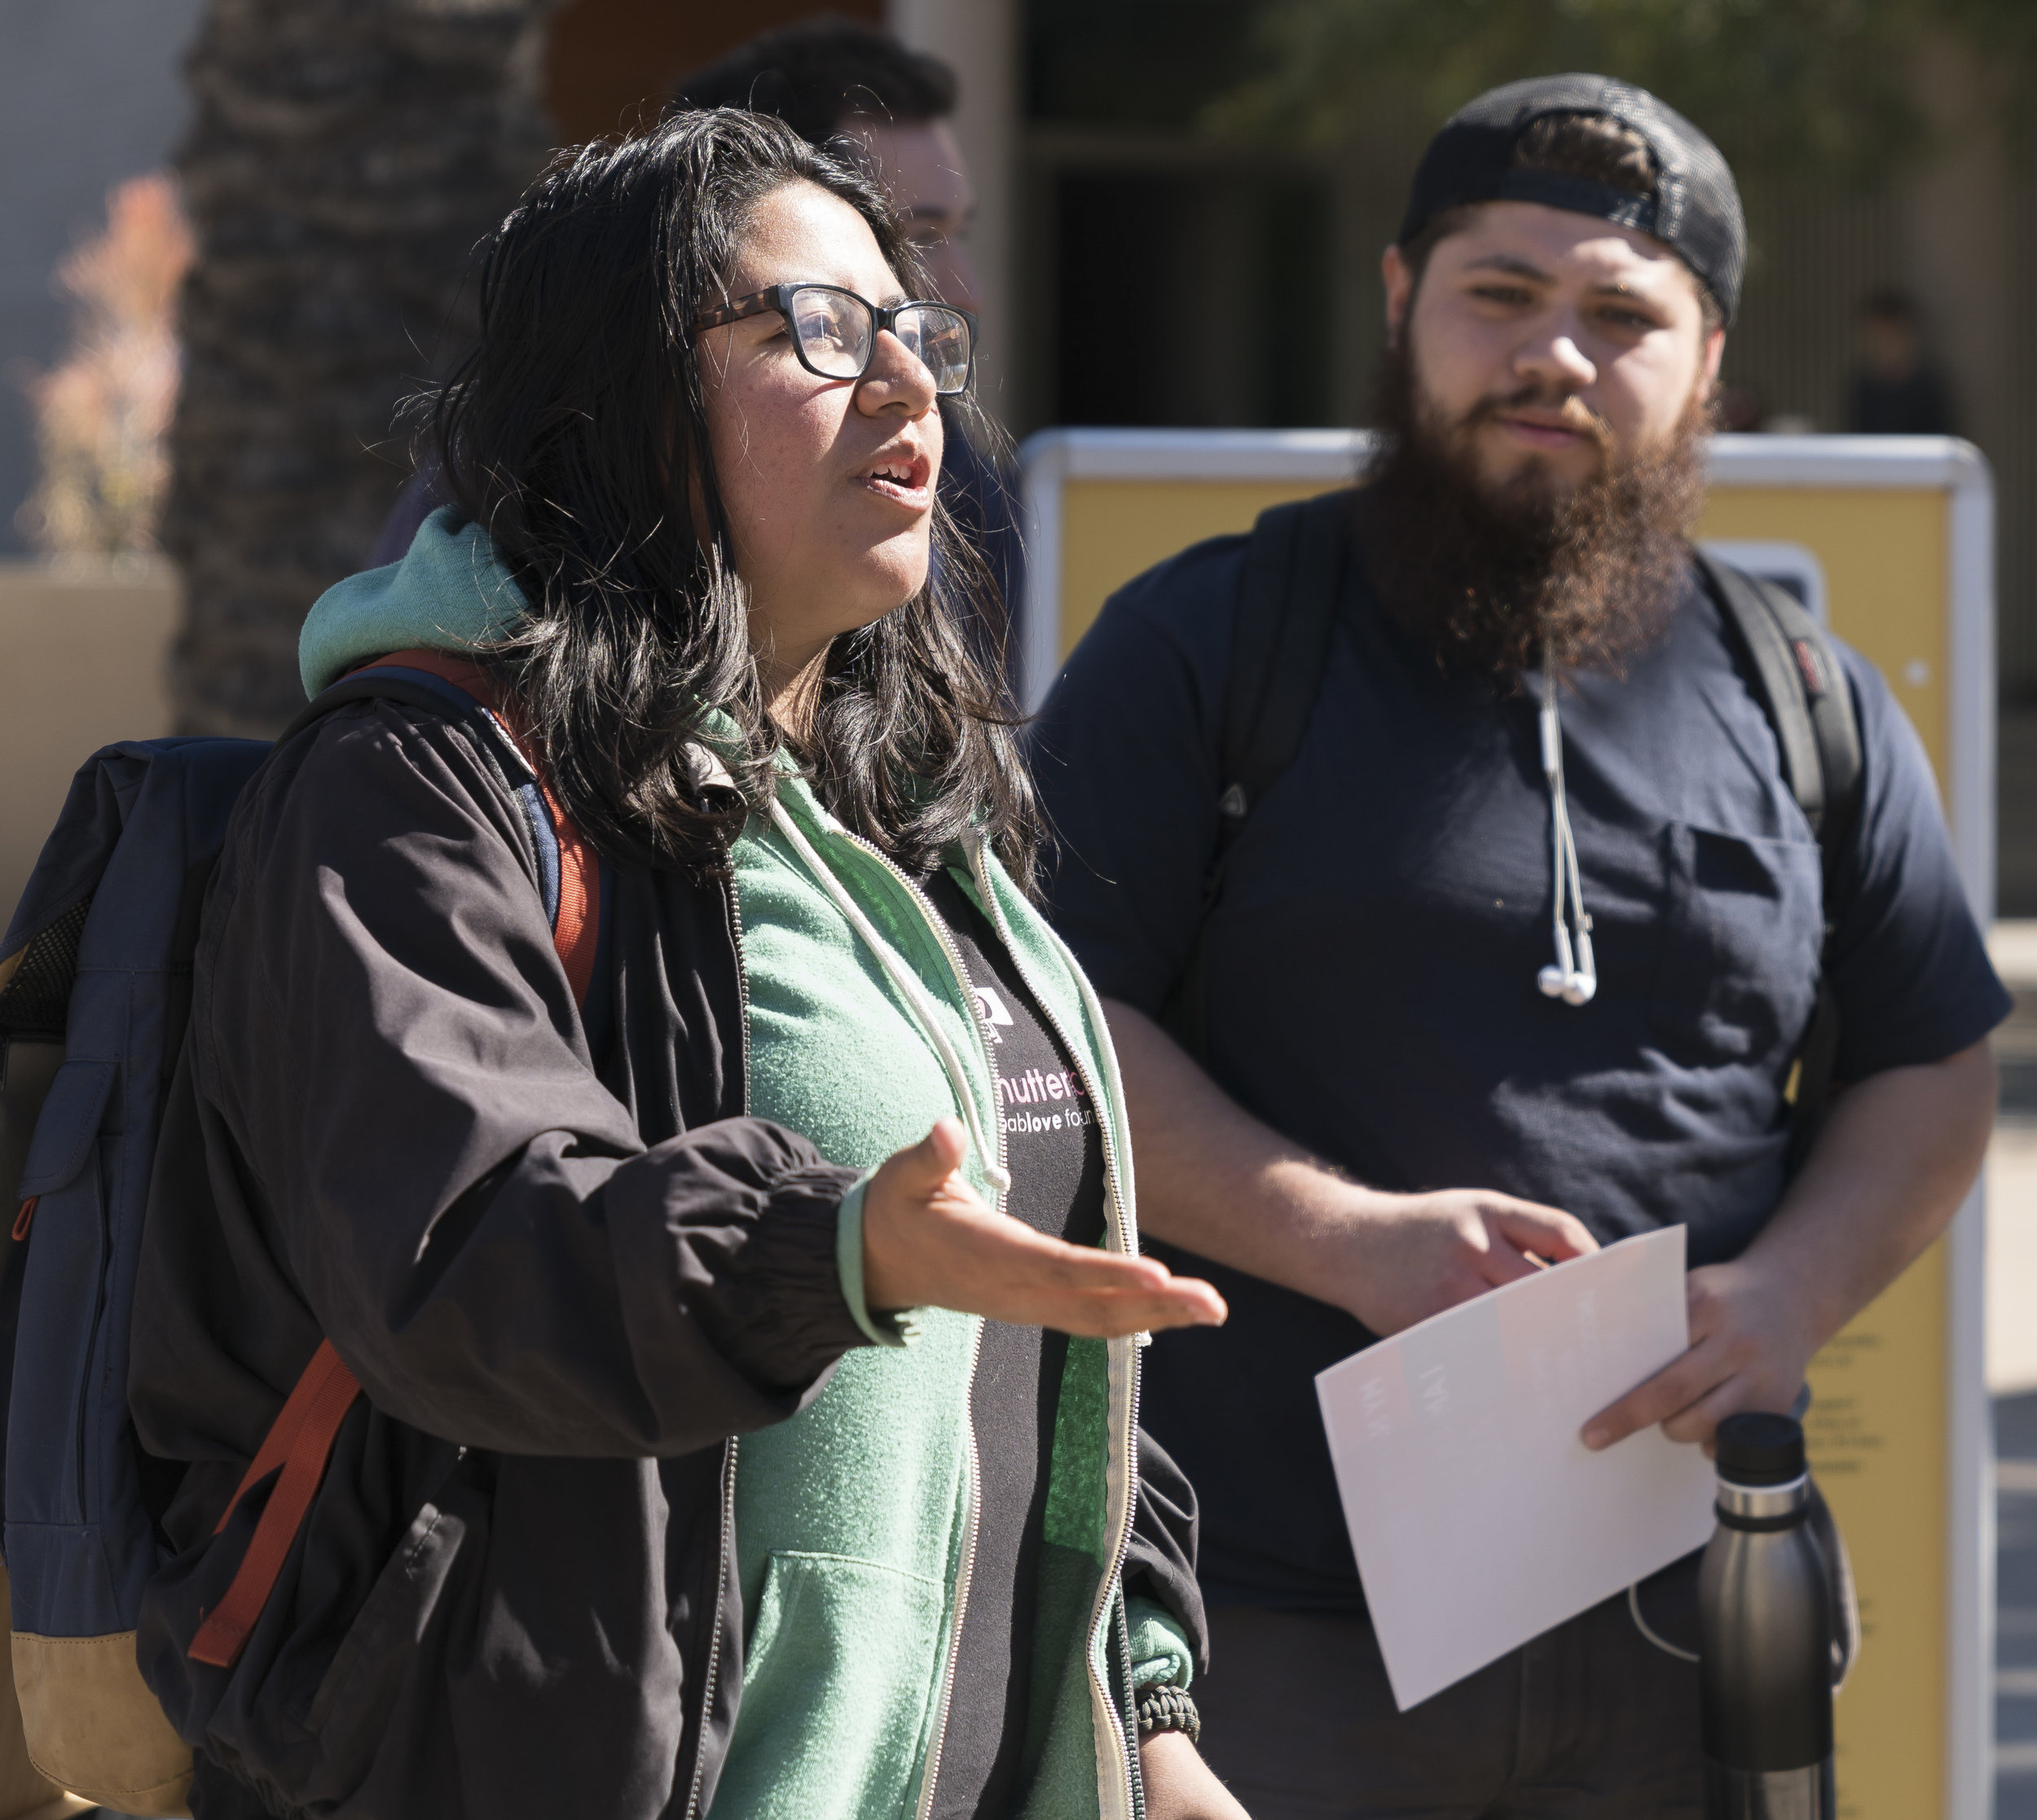 "Santa Monica College student Andrea Ramos (left) speaks at a DACA Day of Action gathering on Monday, March 5, 2018 at SMC's main campus in Santa Monica, Calif. as fellow student Delfino Martinez (right) listens. Ramos, 25, an undocumented student who was not financially able to apply for DACA benefits when the program was first announced under then-President Barack Obama, said she always saw signs on campus of SMC standing behind other nationla events. ""This is the first time I feel supported by SMC [as an undocumented student without DACA status],"" she said.   (Photo: Helena Sung)"